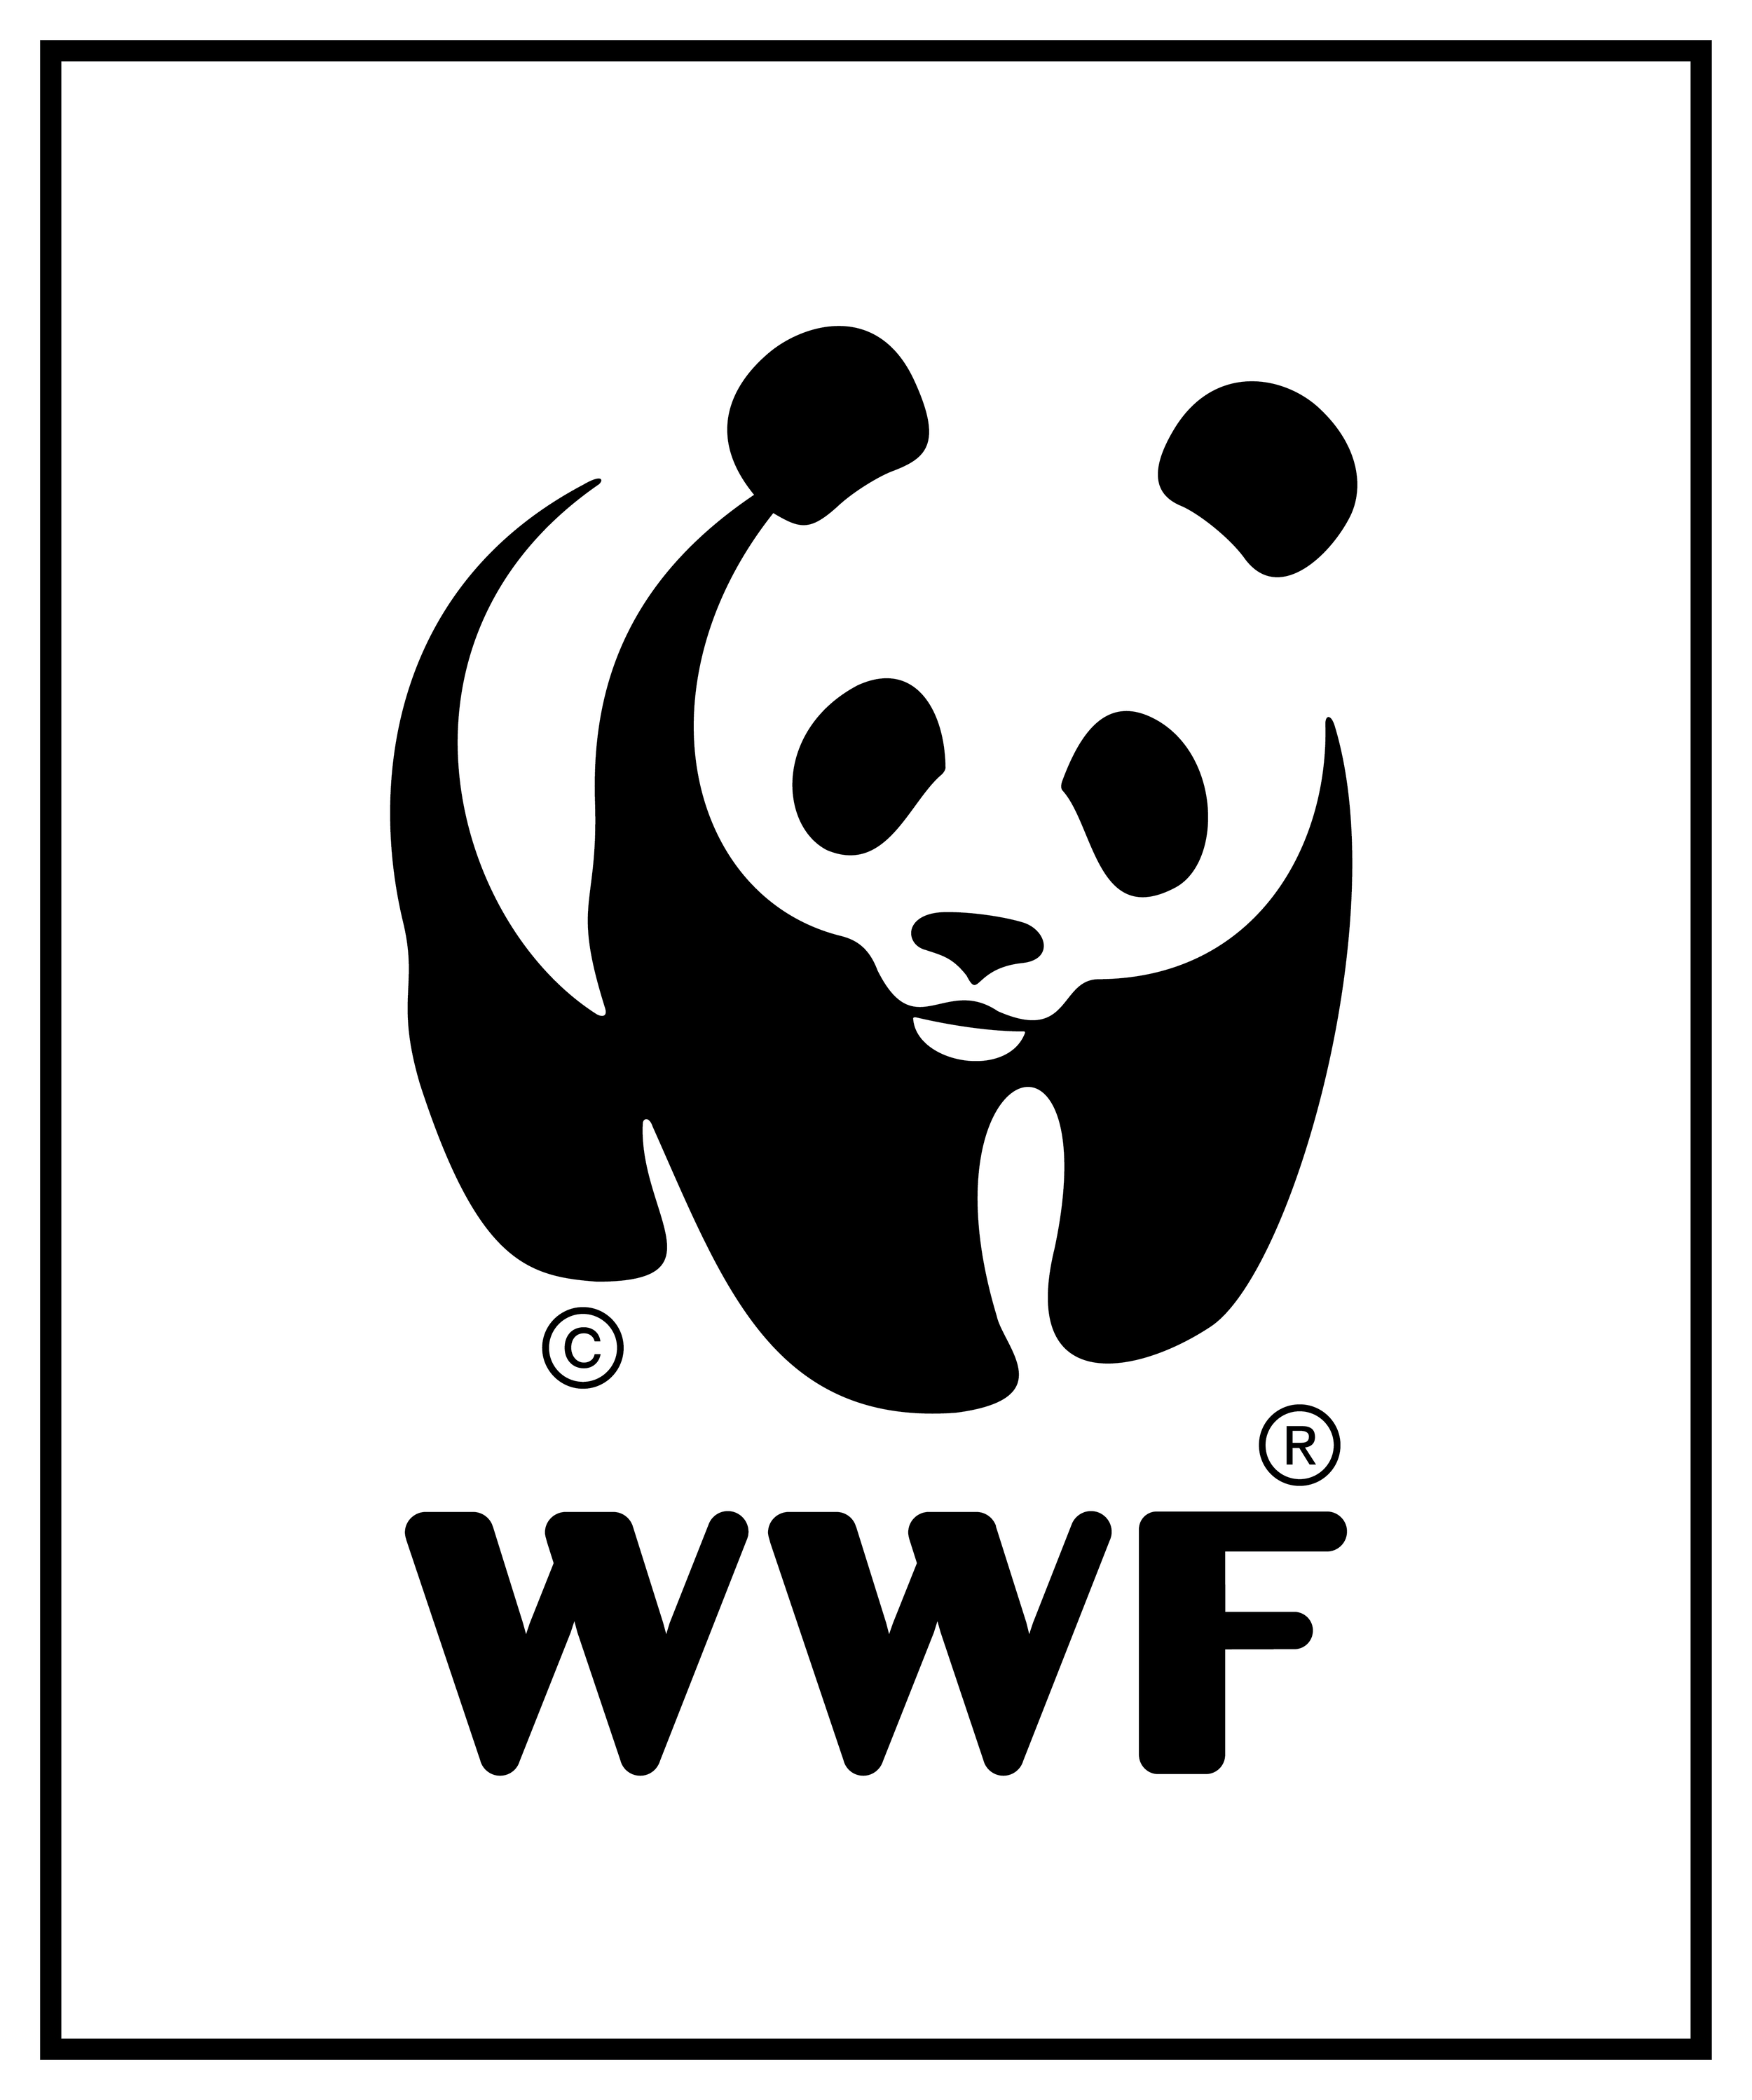 WWF-logo-closed-for-photos-color-background-PNG.png